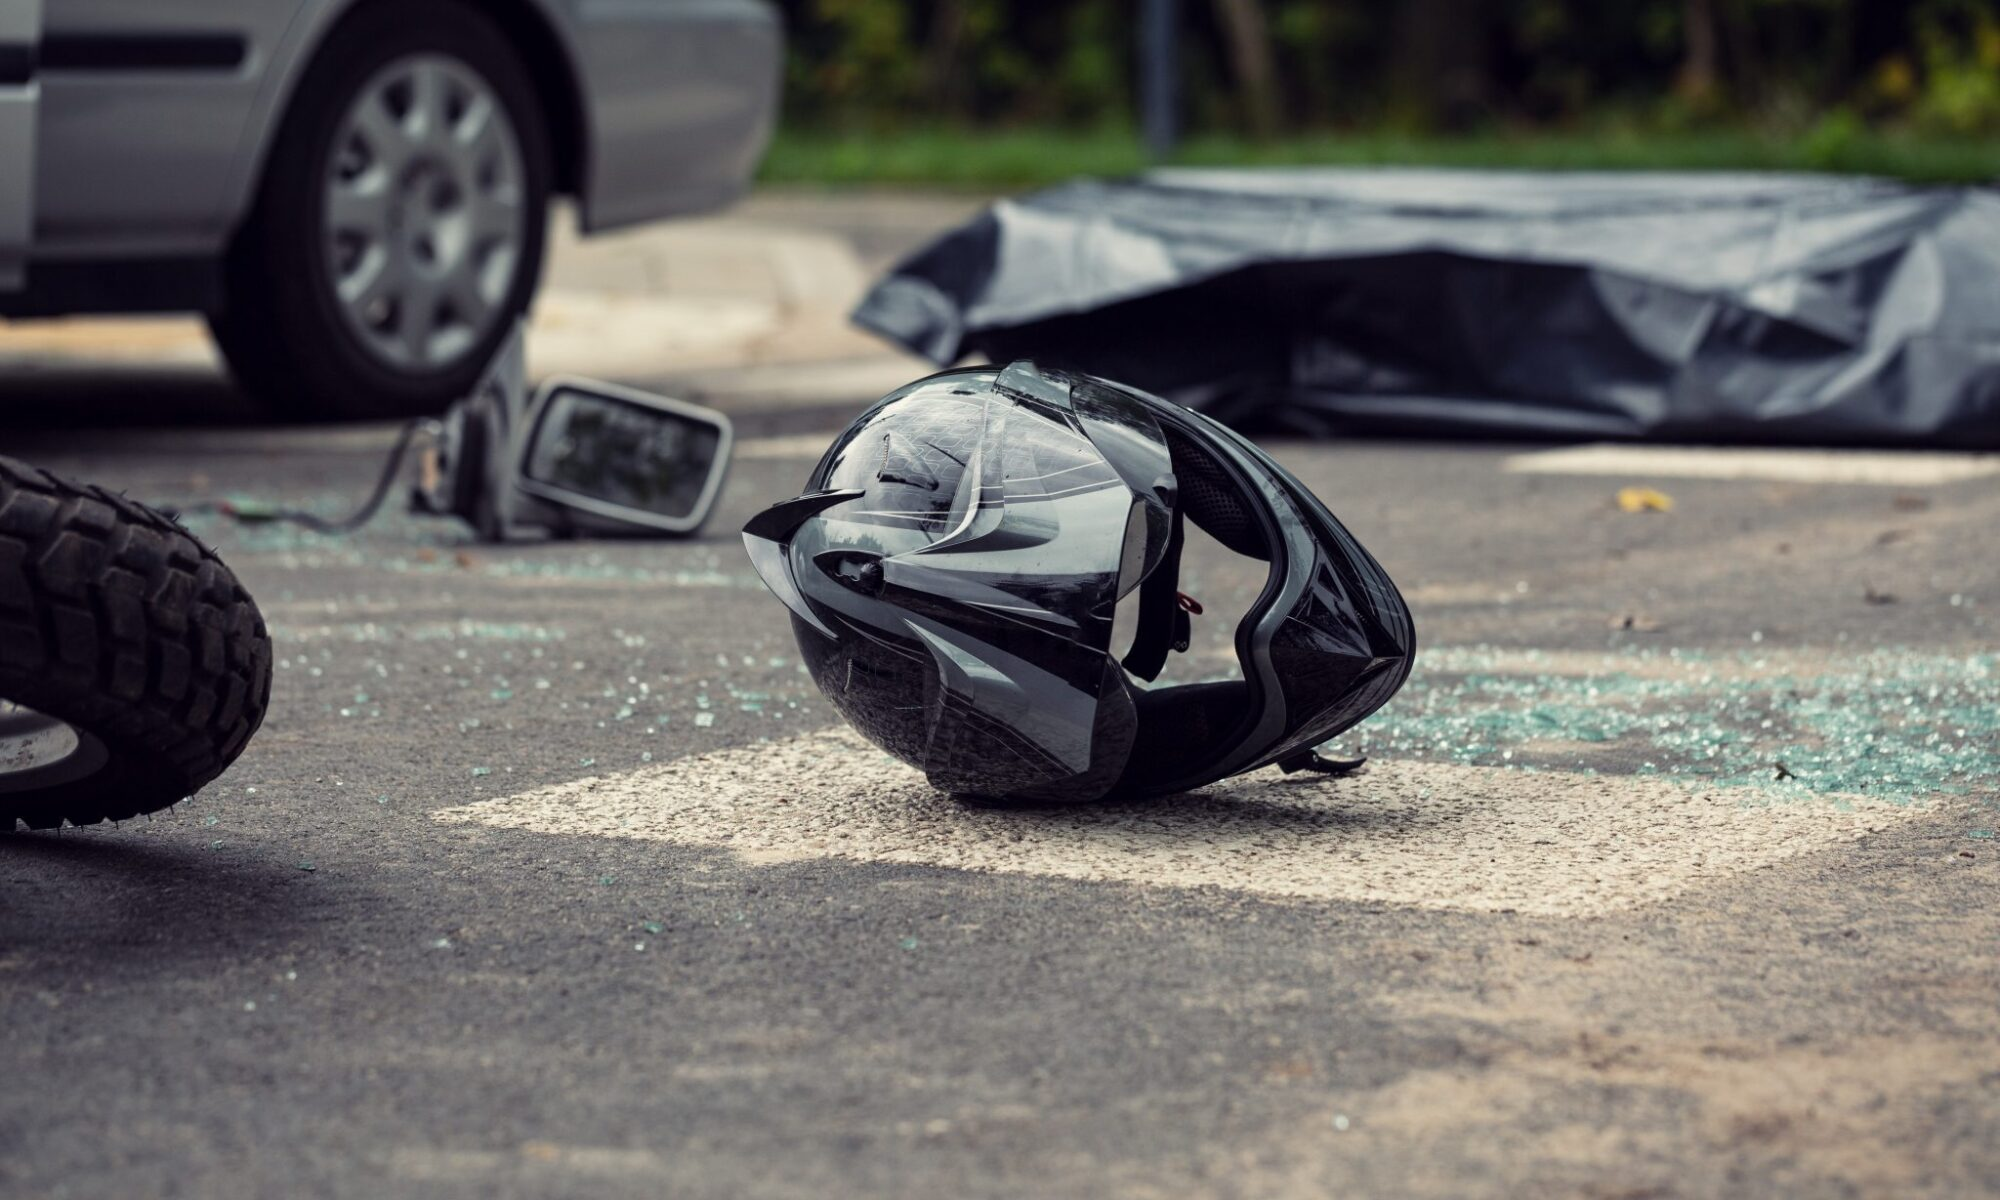 Motorcycle helmet on the road after crash